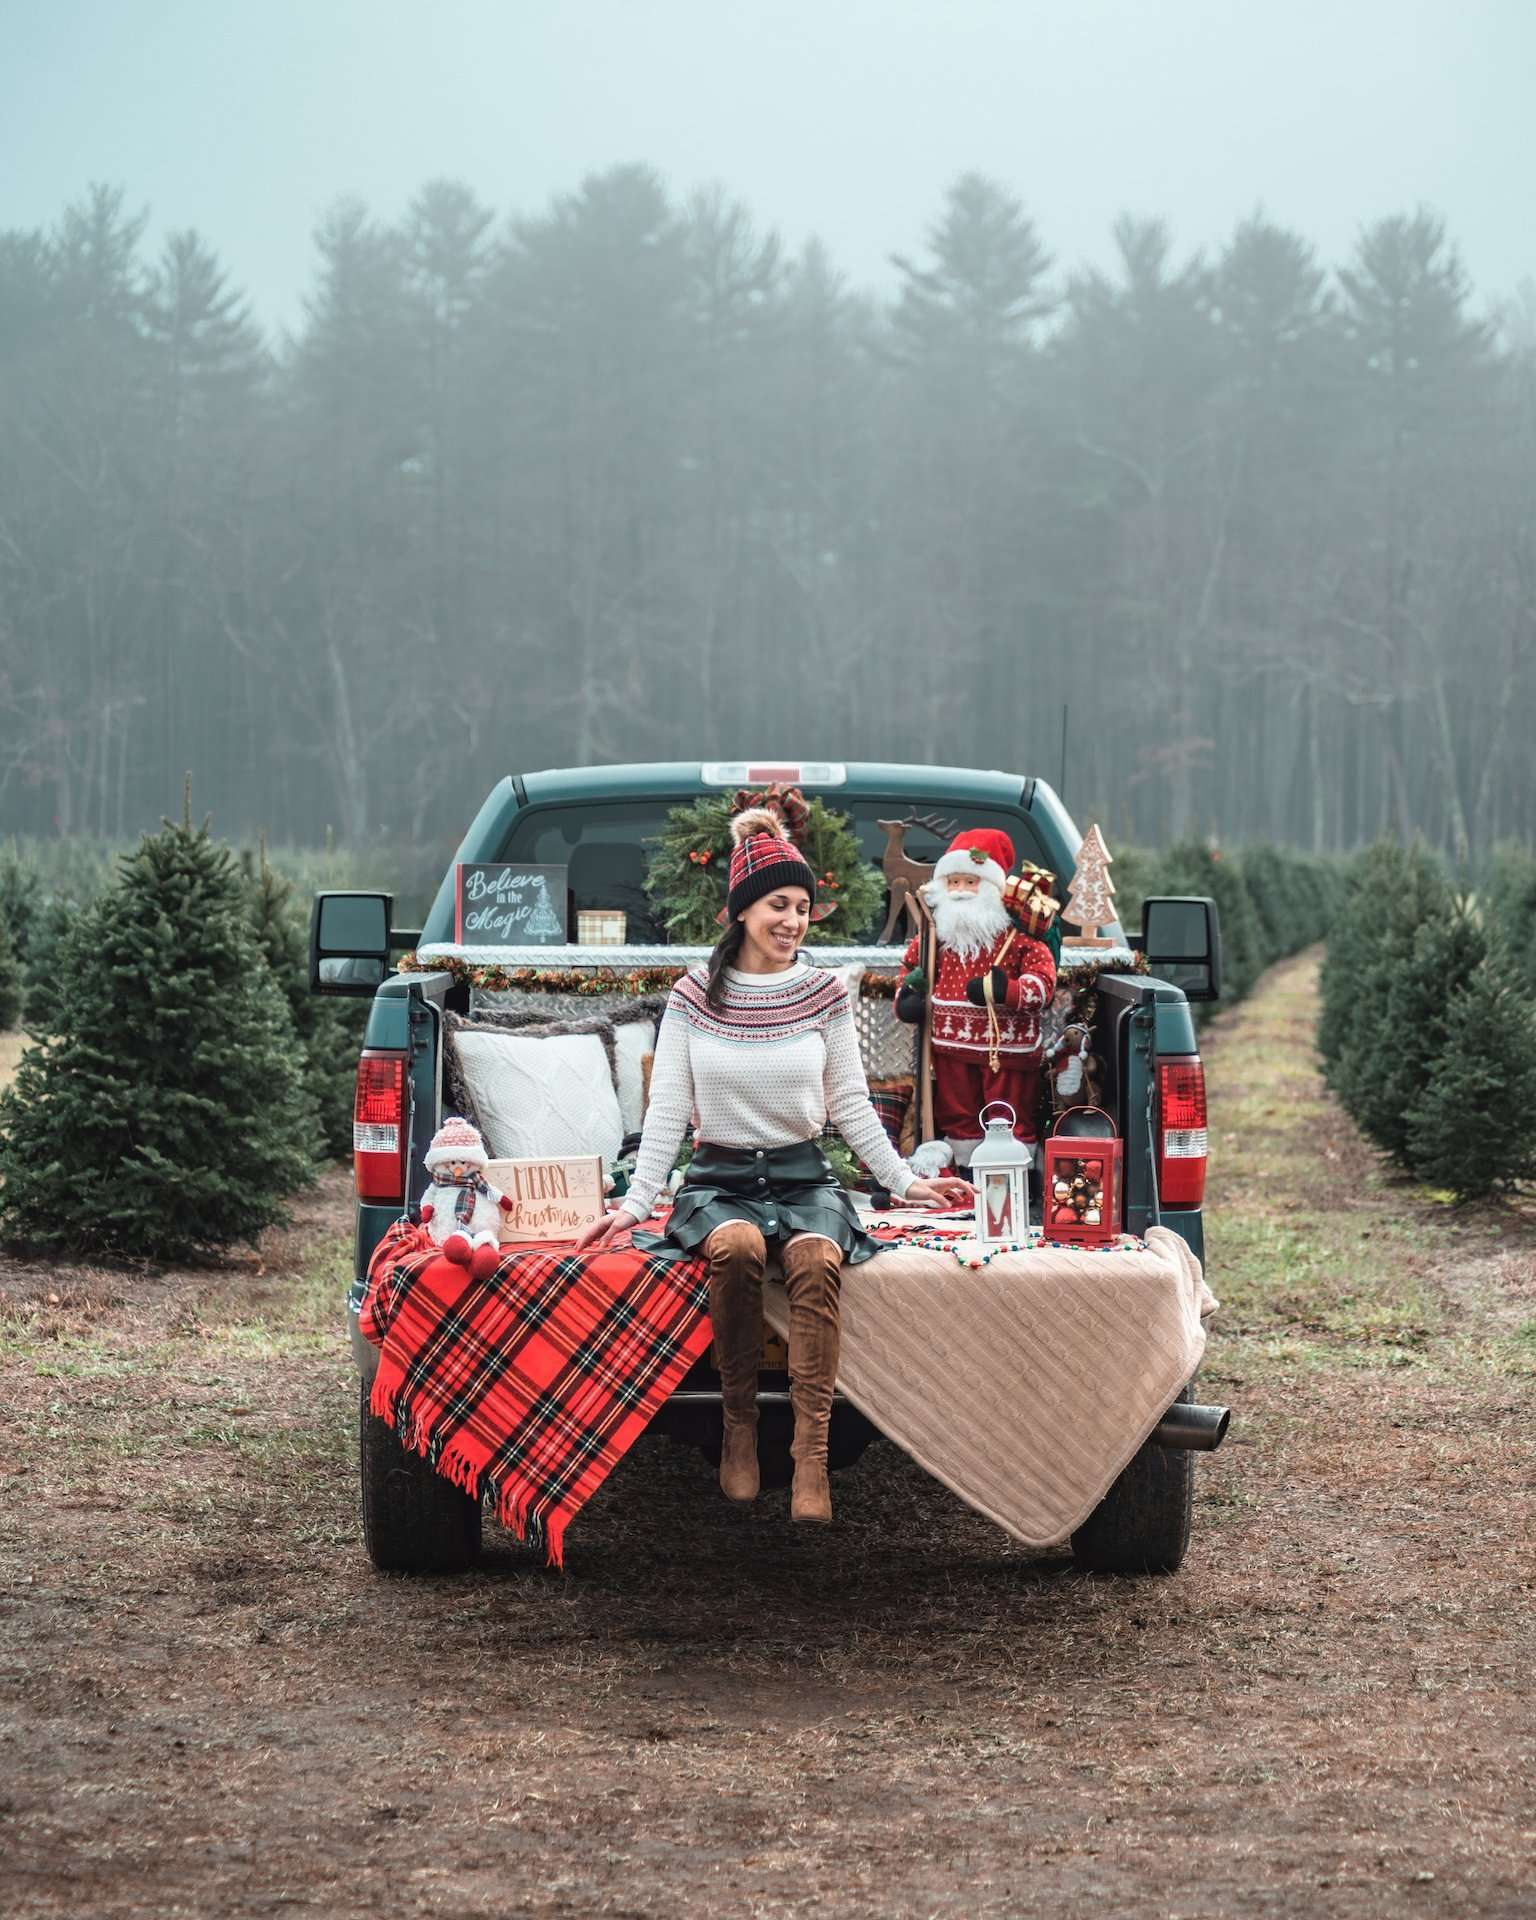 festive pickup truck at Christmas tree farm